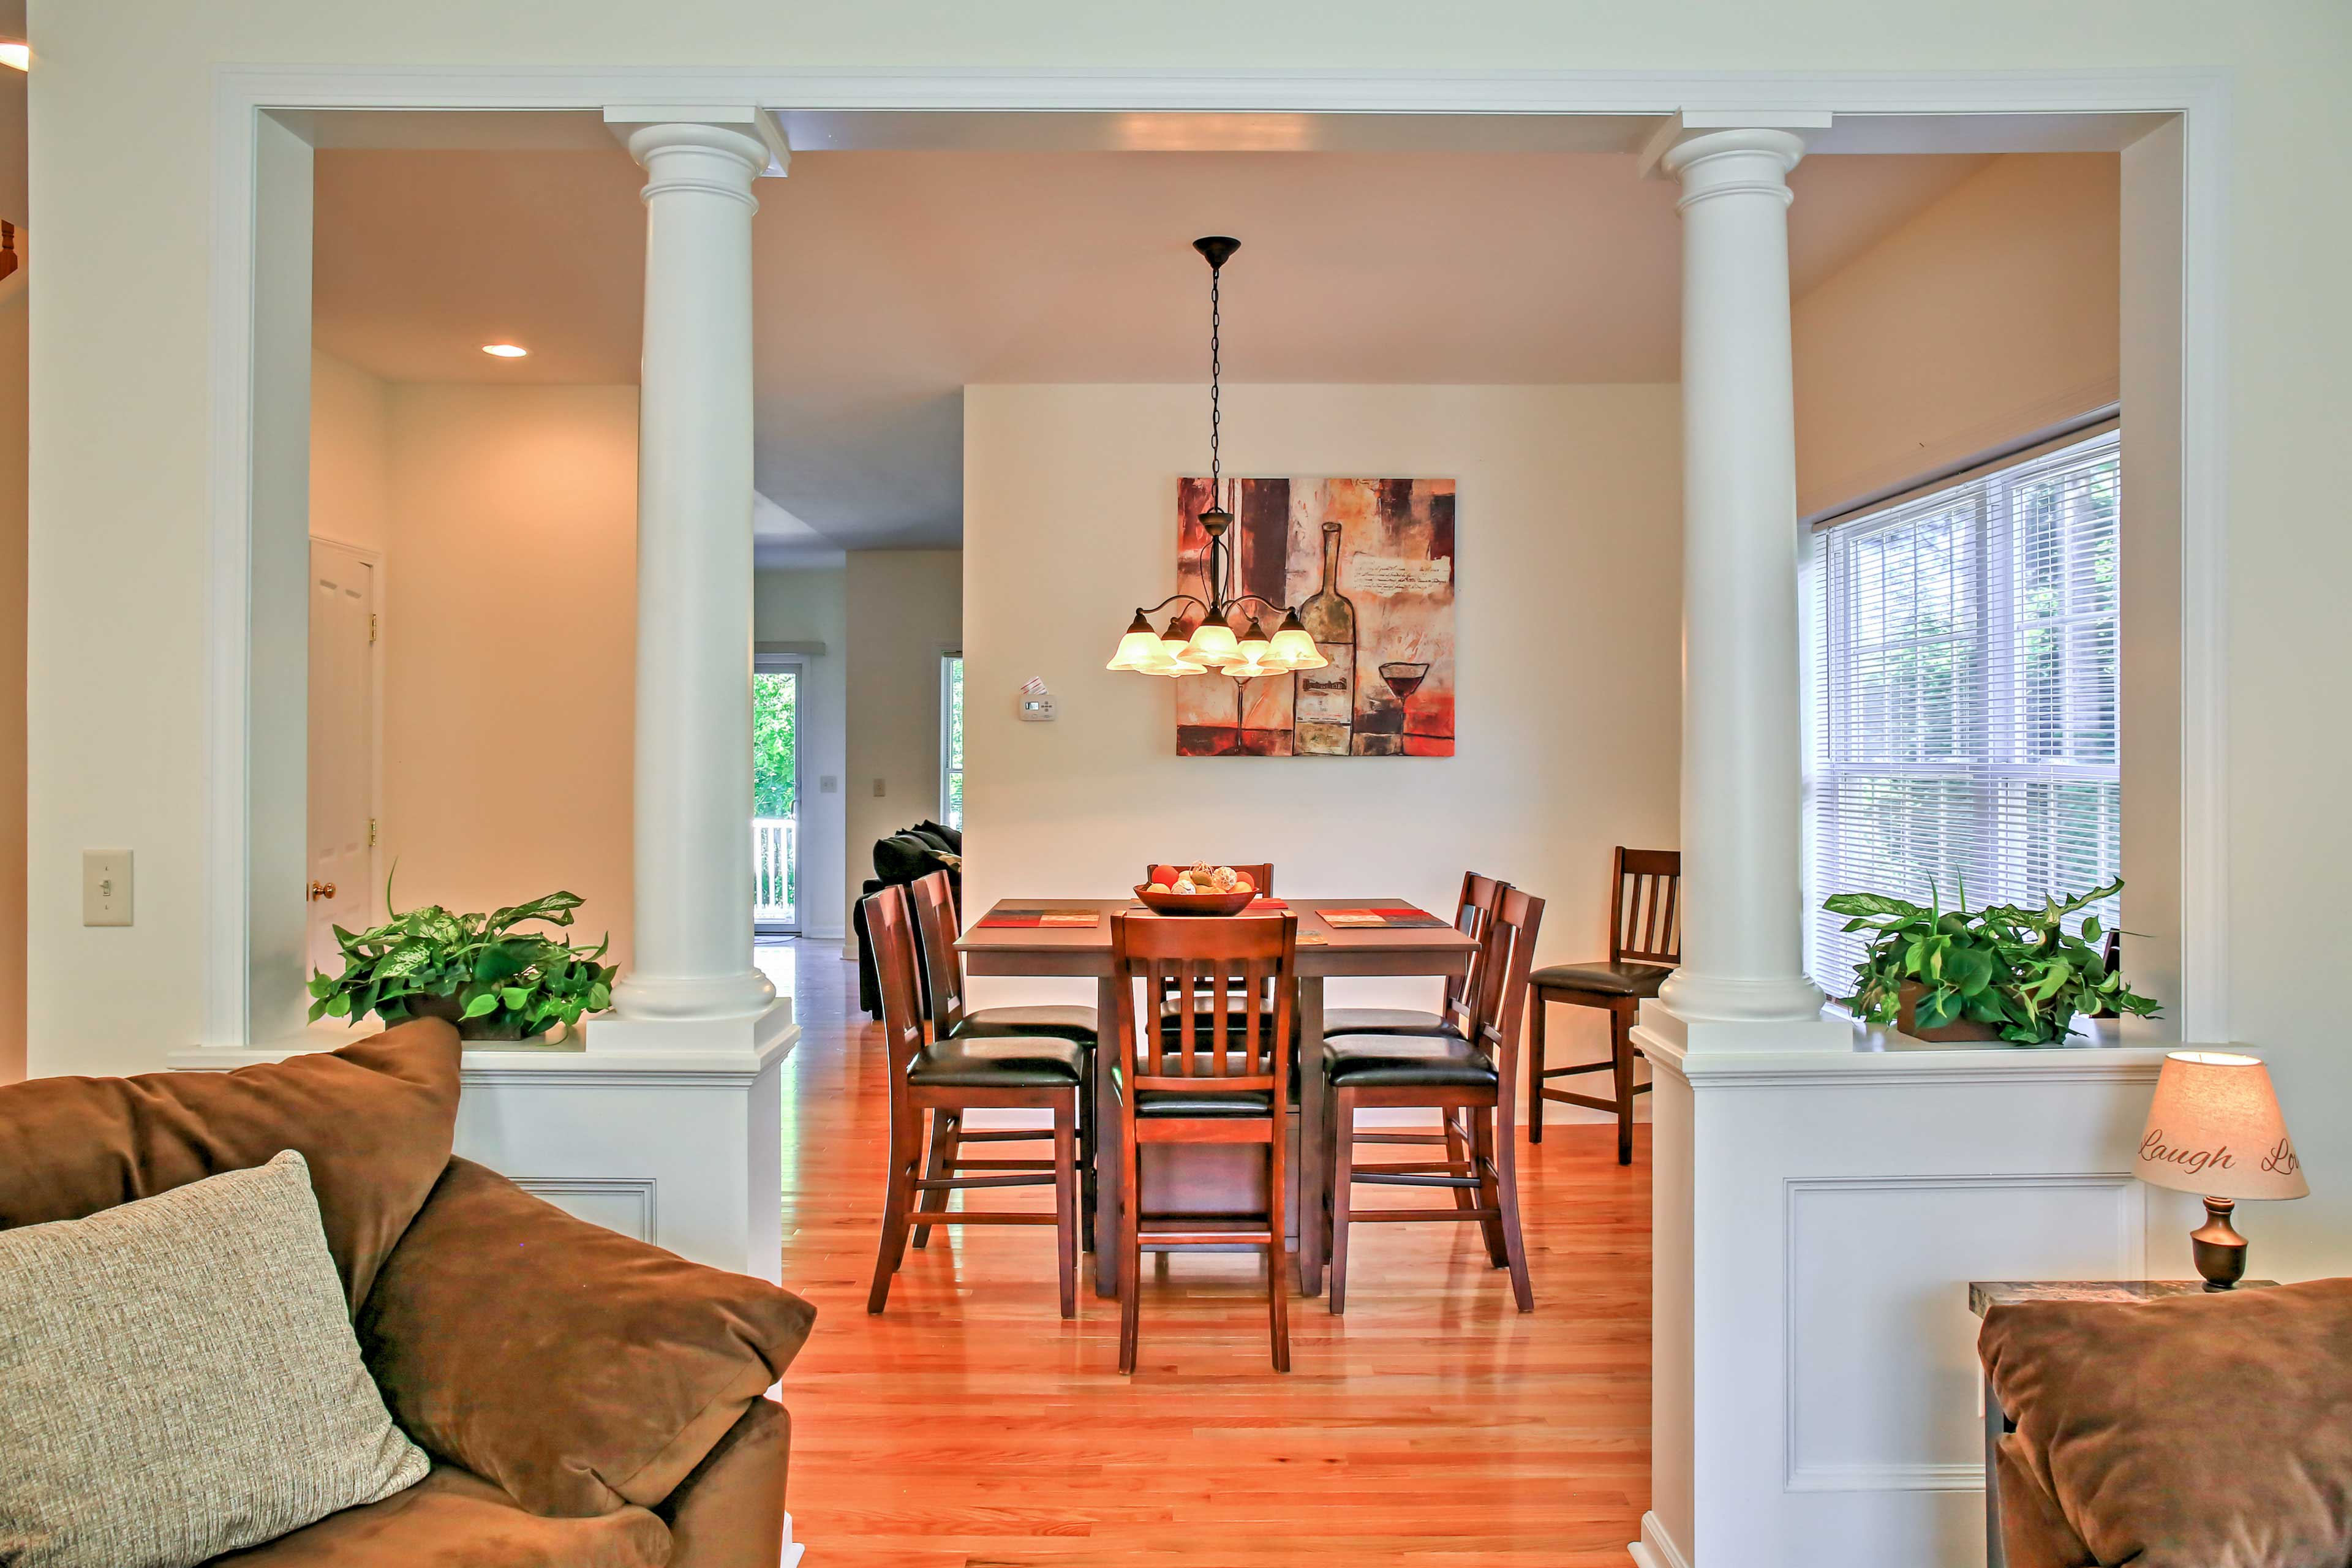 A formal dining area separates the 2 main living rooms.